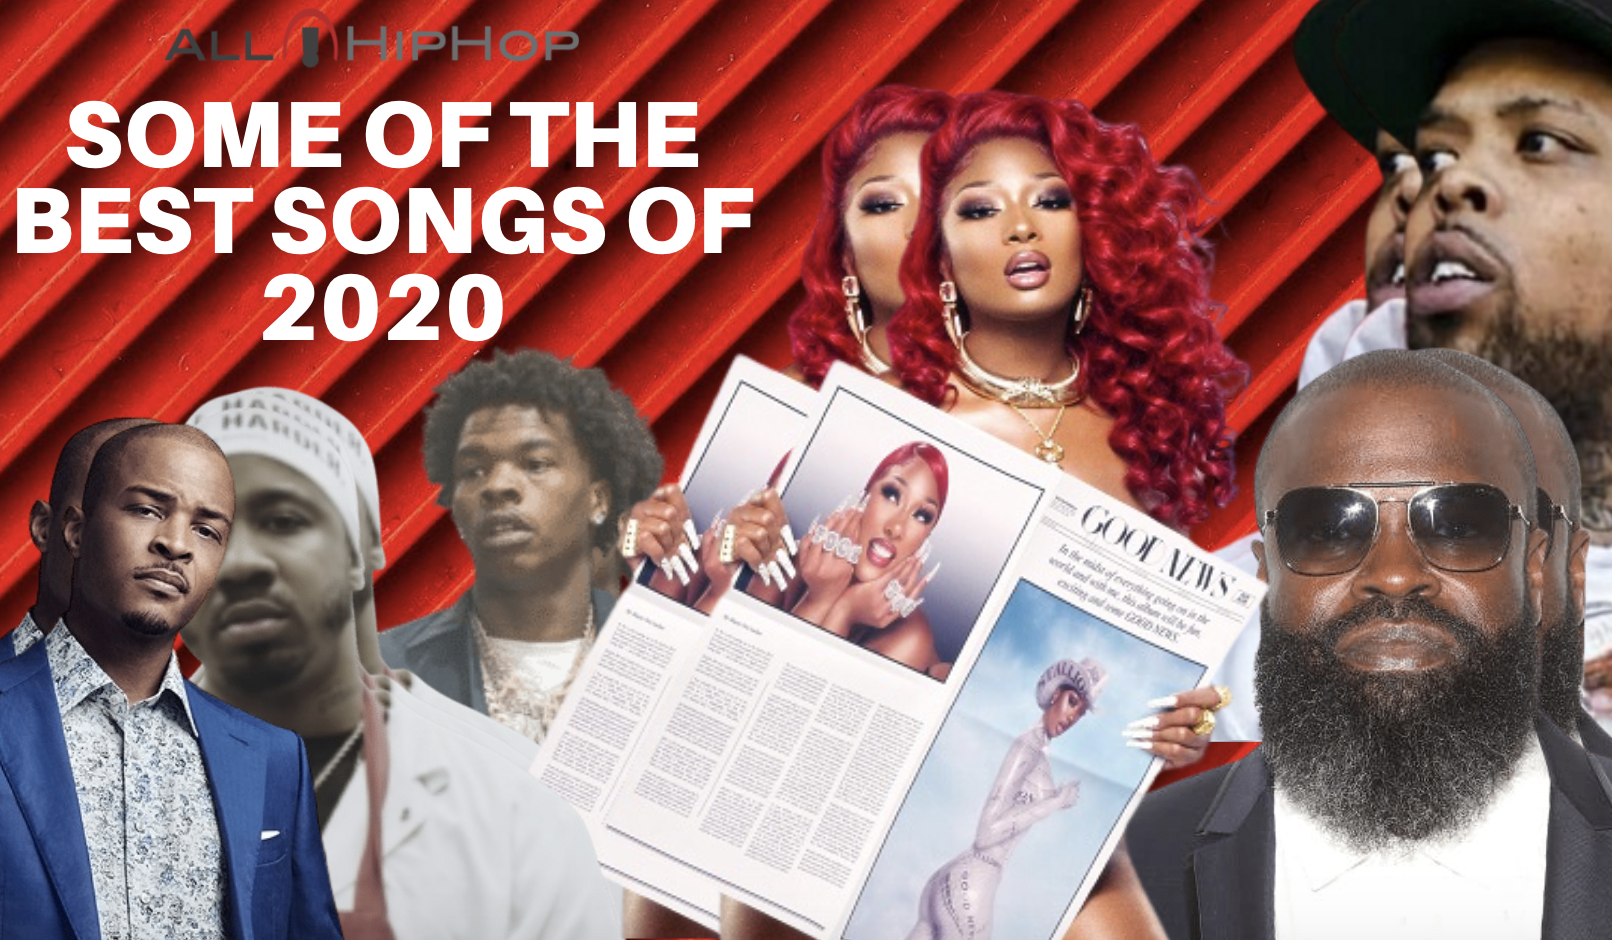 Some of the best songs of 2020